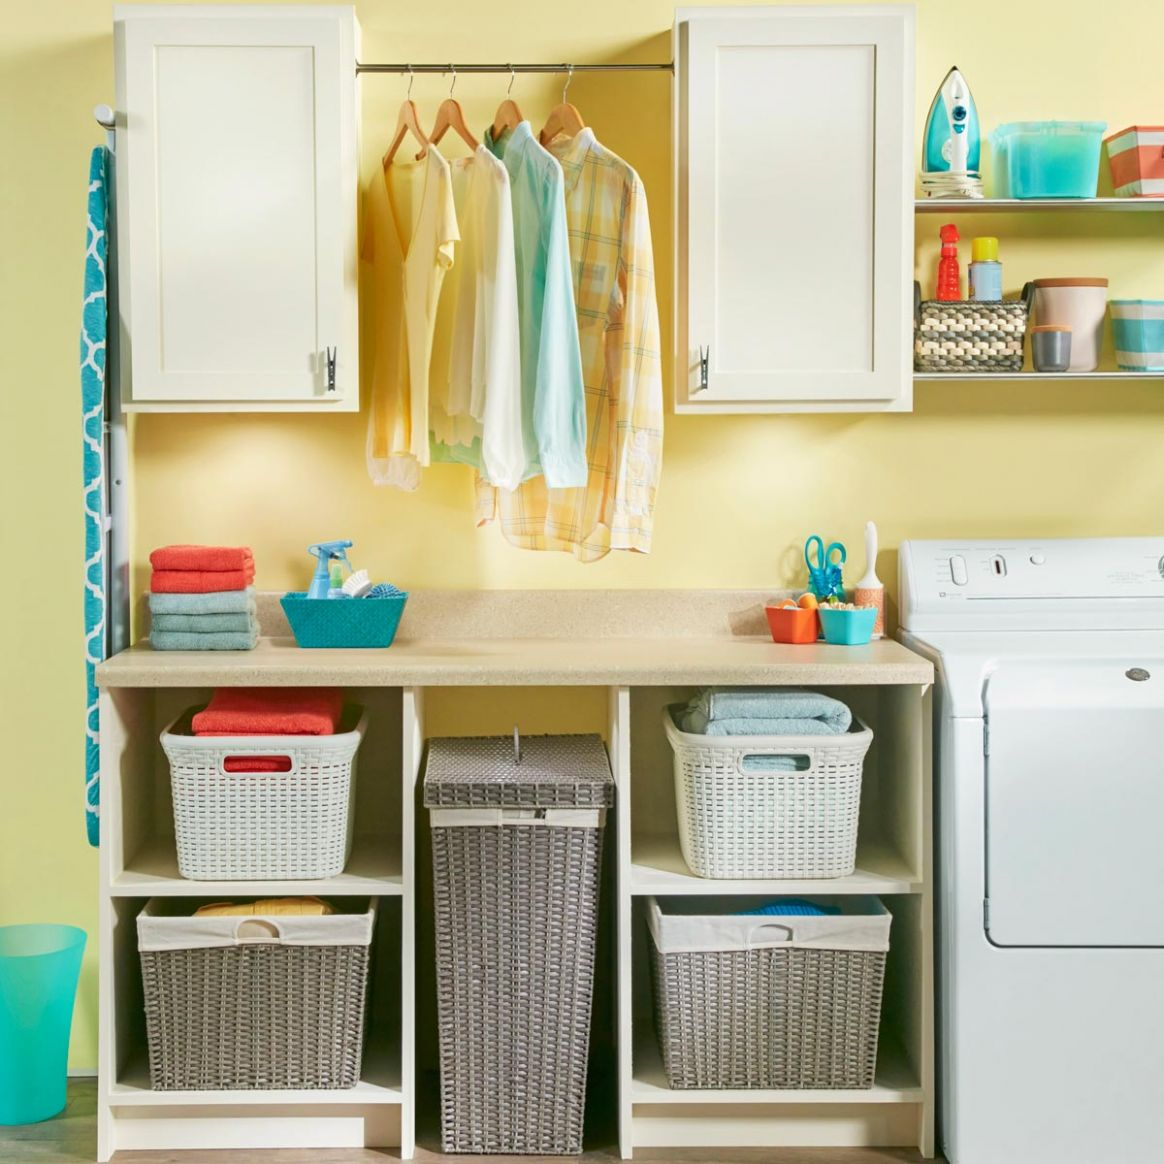 10 Inexpensive Laundry Room Updates You Can DIY | Family Handyman ..